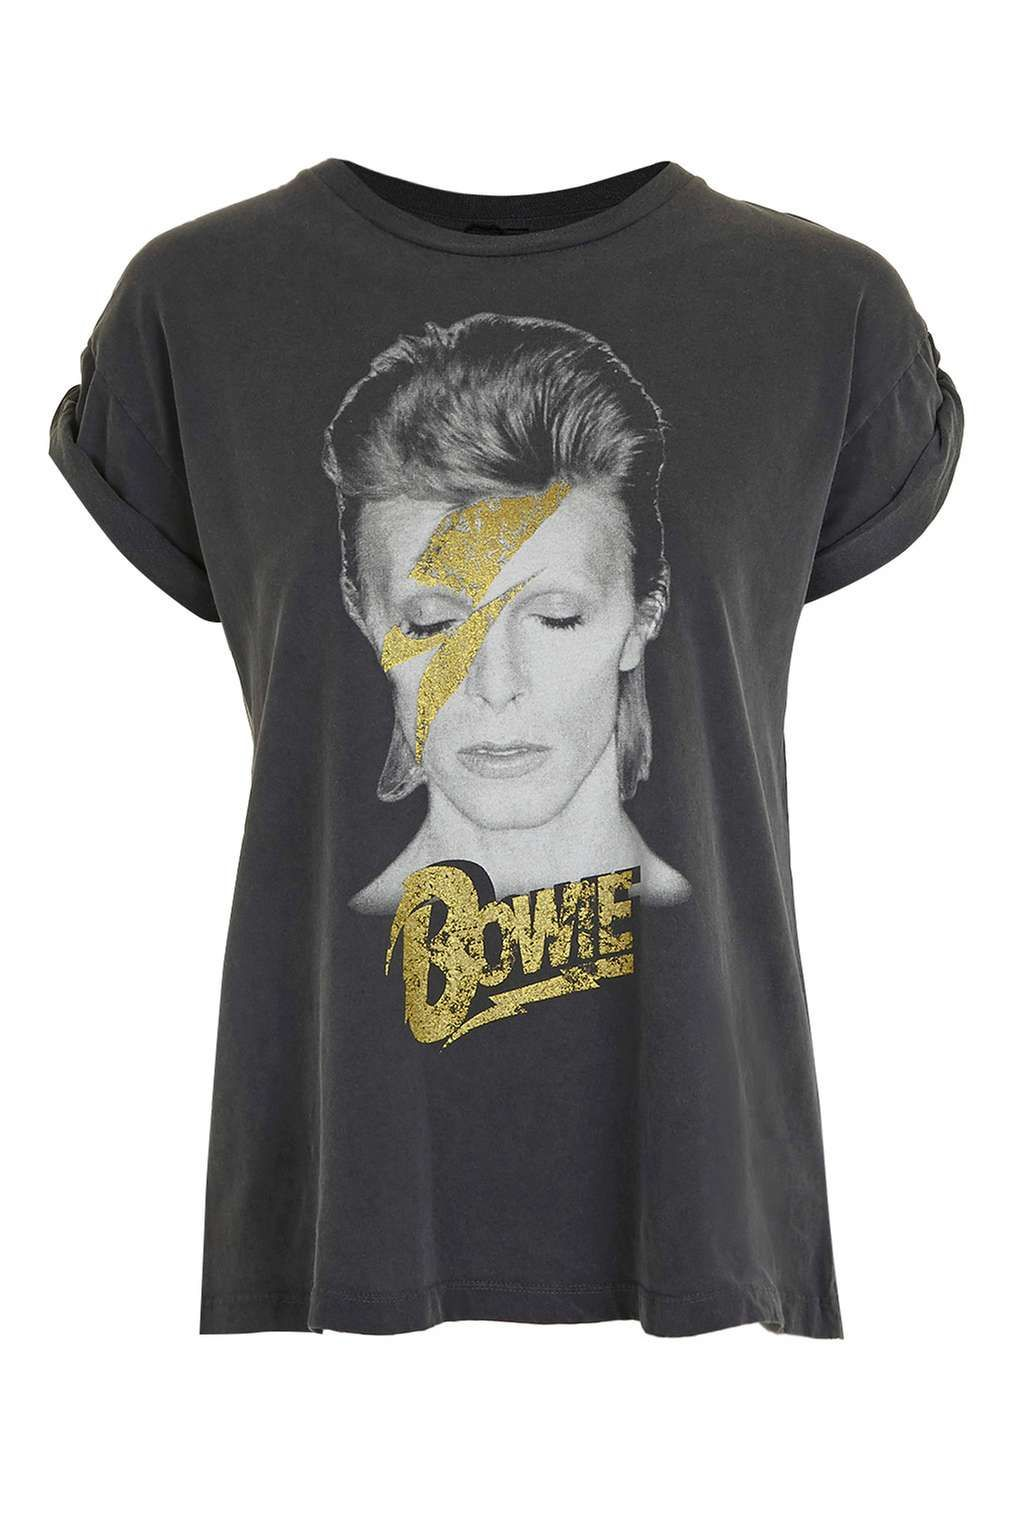 f53030d2230 Bowie Tee by And Finally in 2019